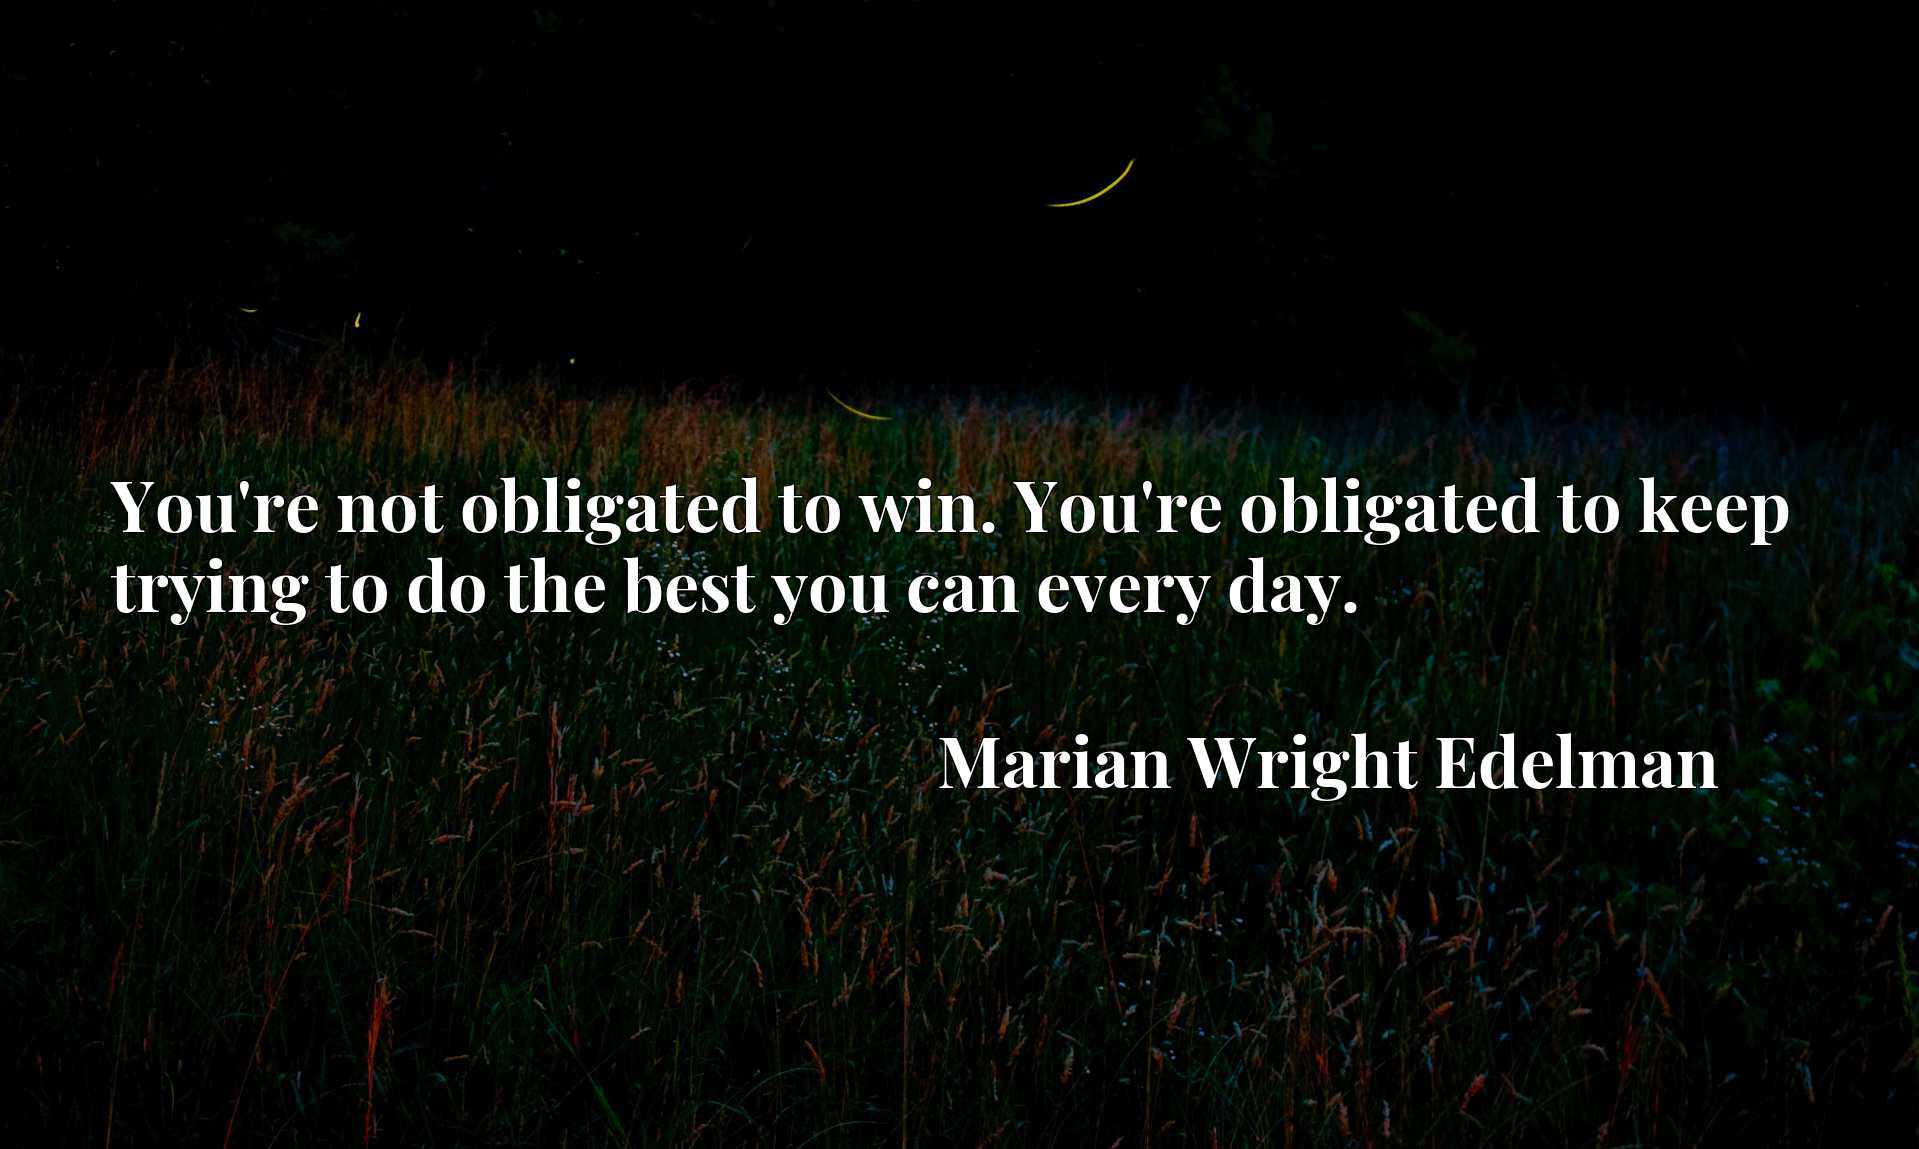 You're not obligated to win. You're obligated to keep trying to do the best you can every day.